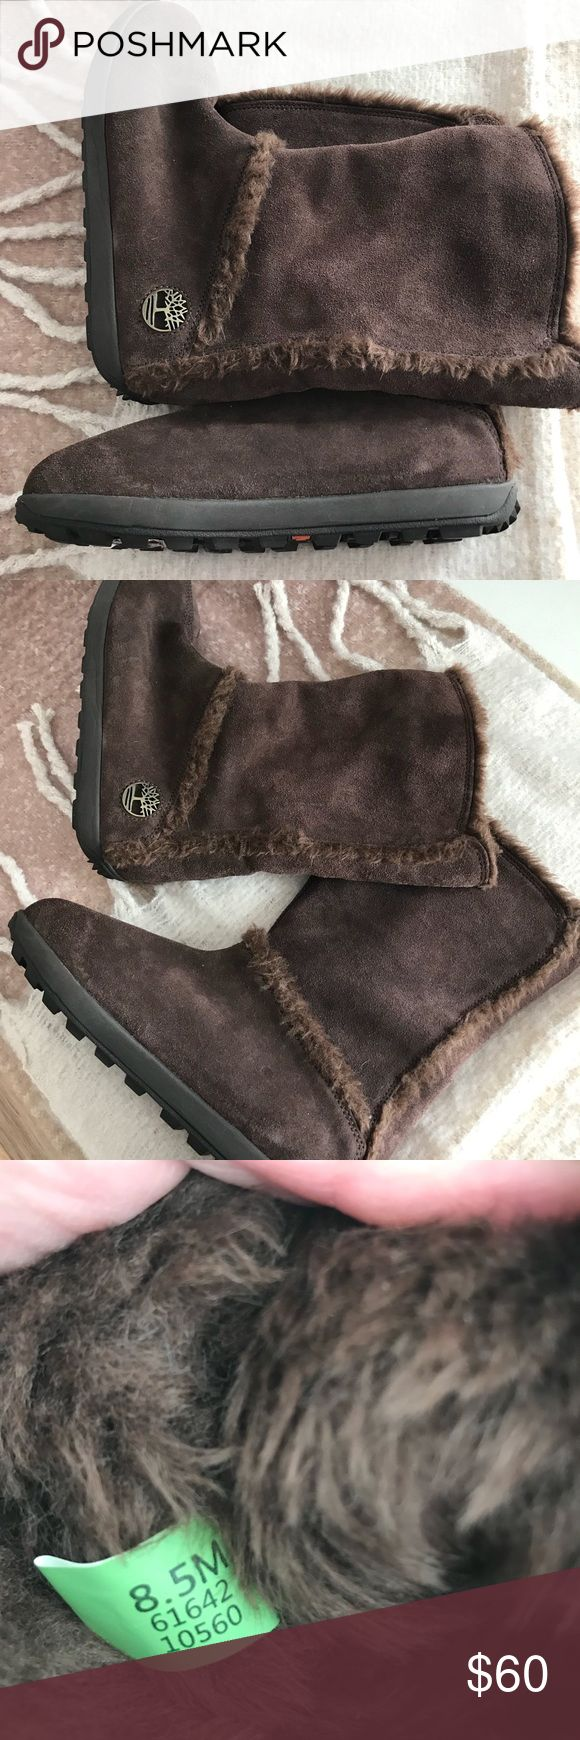 Timberland Mukluk Boots Never worn, new without box or tags. Brown Timberland mukluk boots. Size 8 1/2 Women's Timberland Shoes Winter & Rain Boots